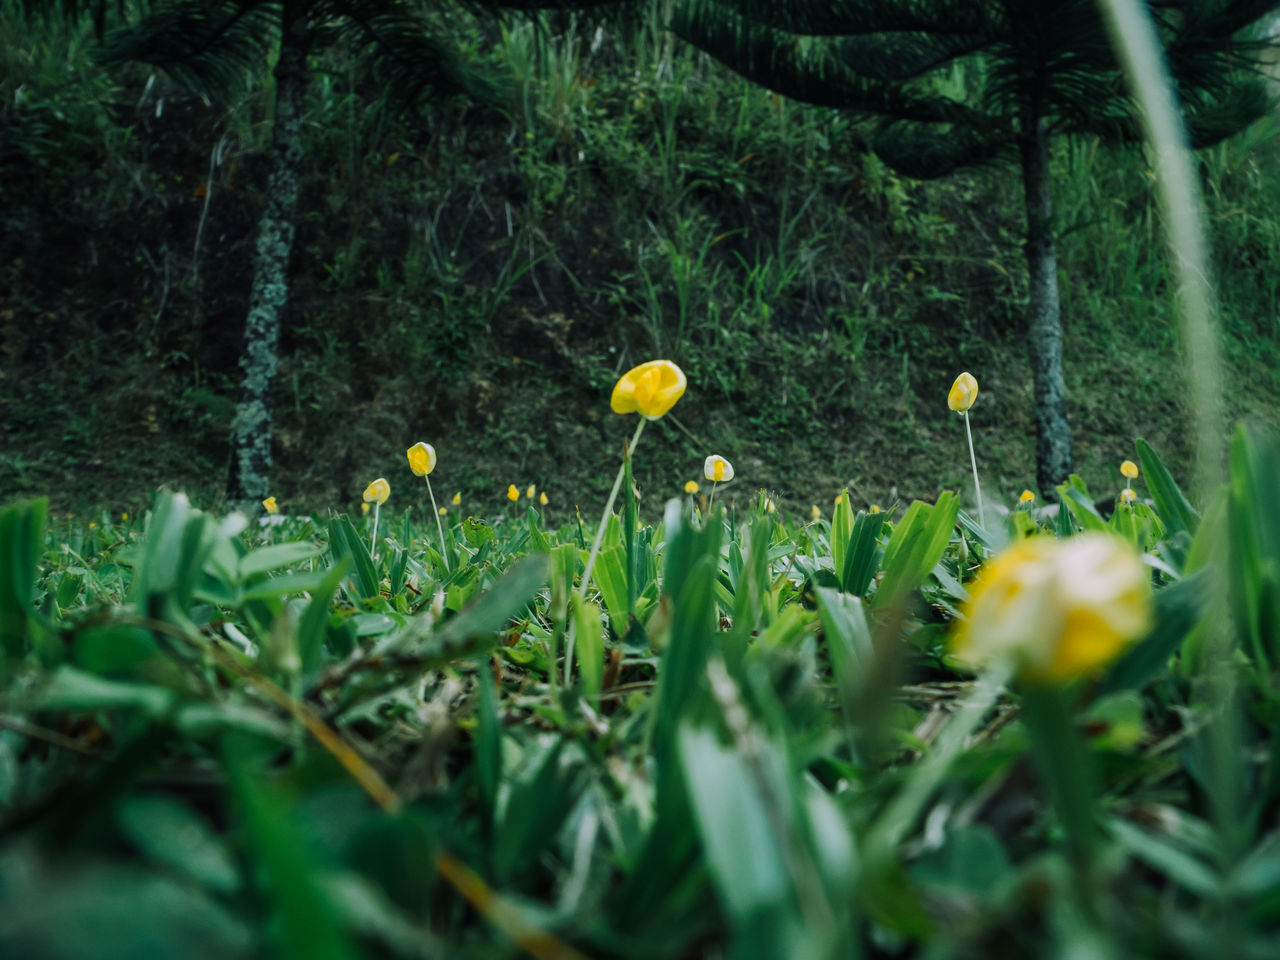 growth, flower, nature, yellow, plant, flora, field, spring, beauty in nature, outdoors, no people, freshness, blooming, crocus, day